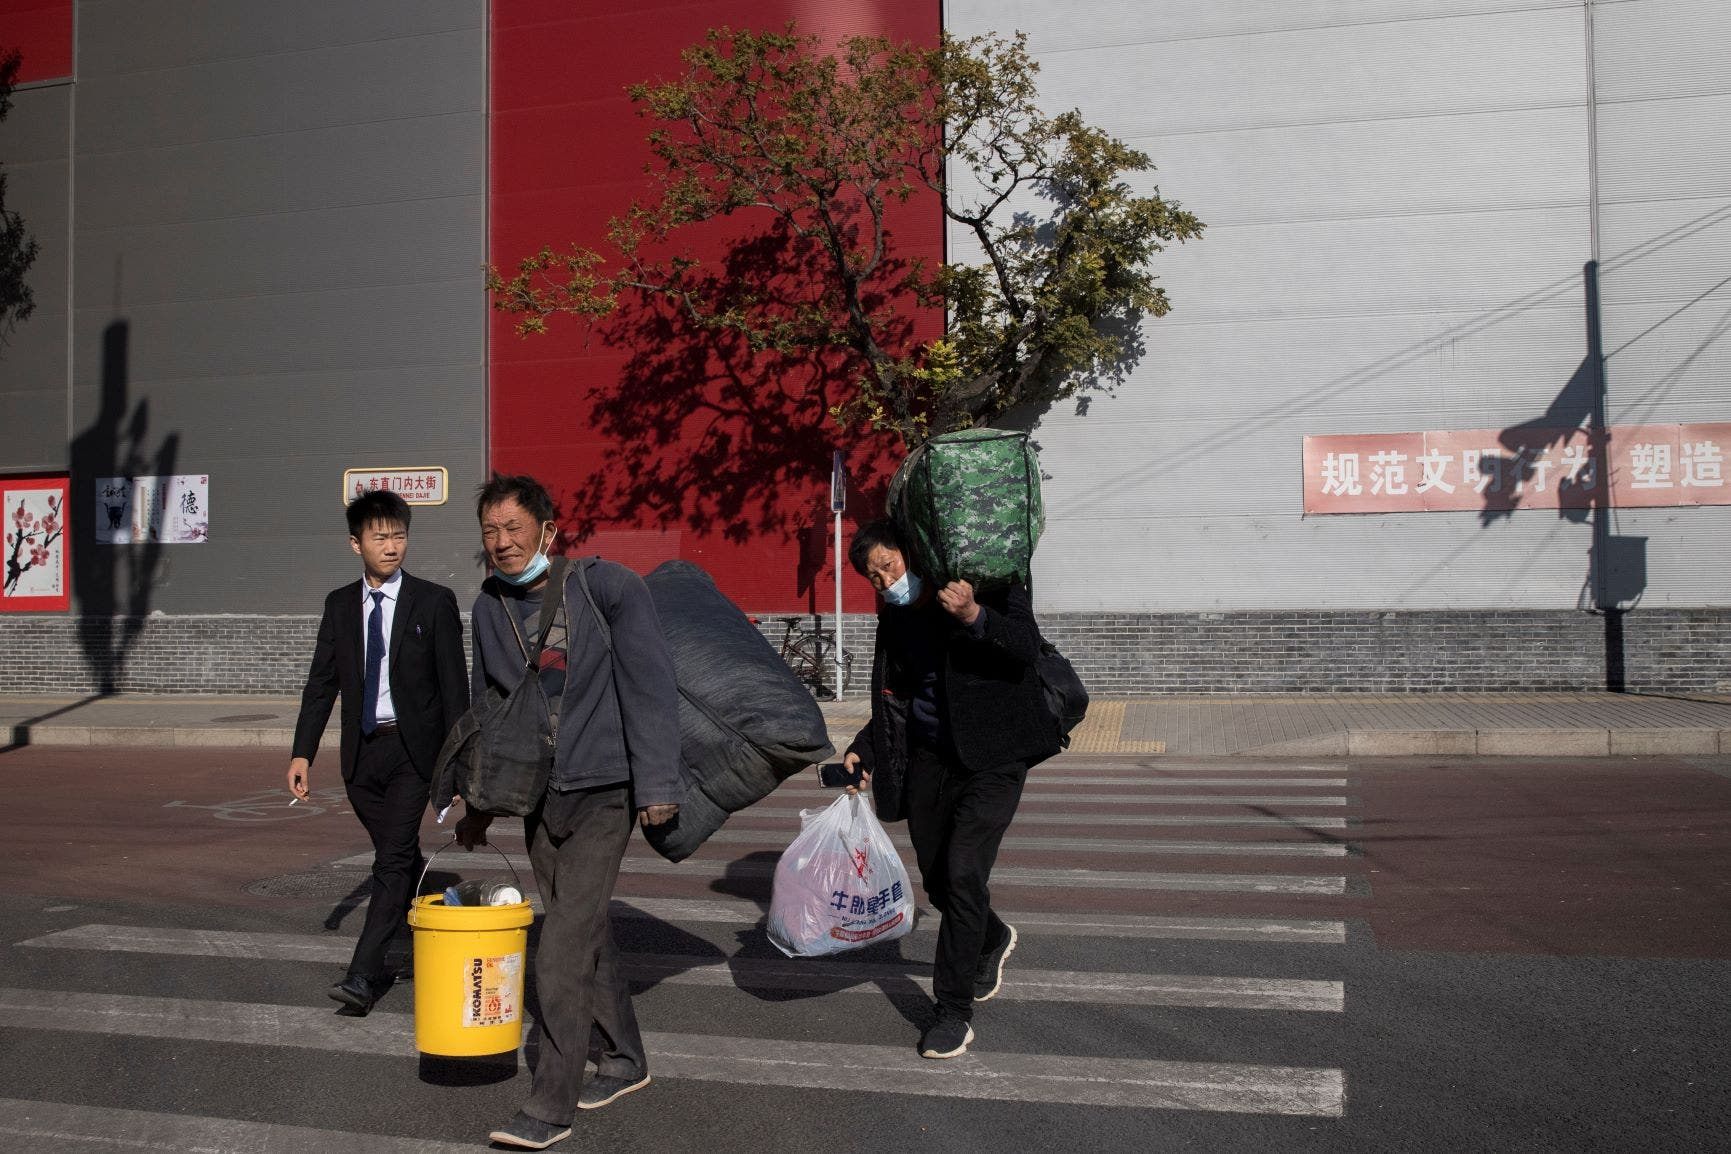 Workers and a businessman cross a street during morning rush hour following an outbreak of the coronavirus disease (COVID-19) in Beijing, China, November 3, 2020. (Reuters)